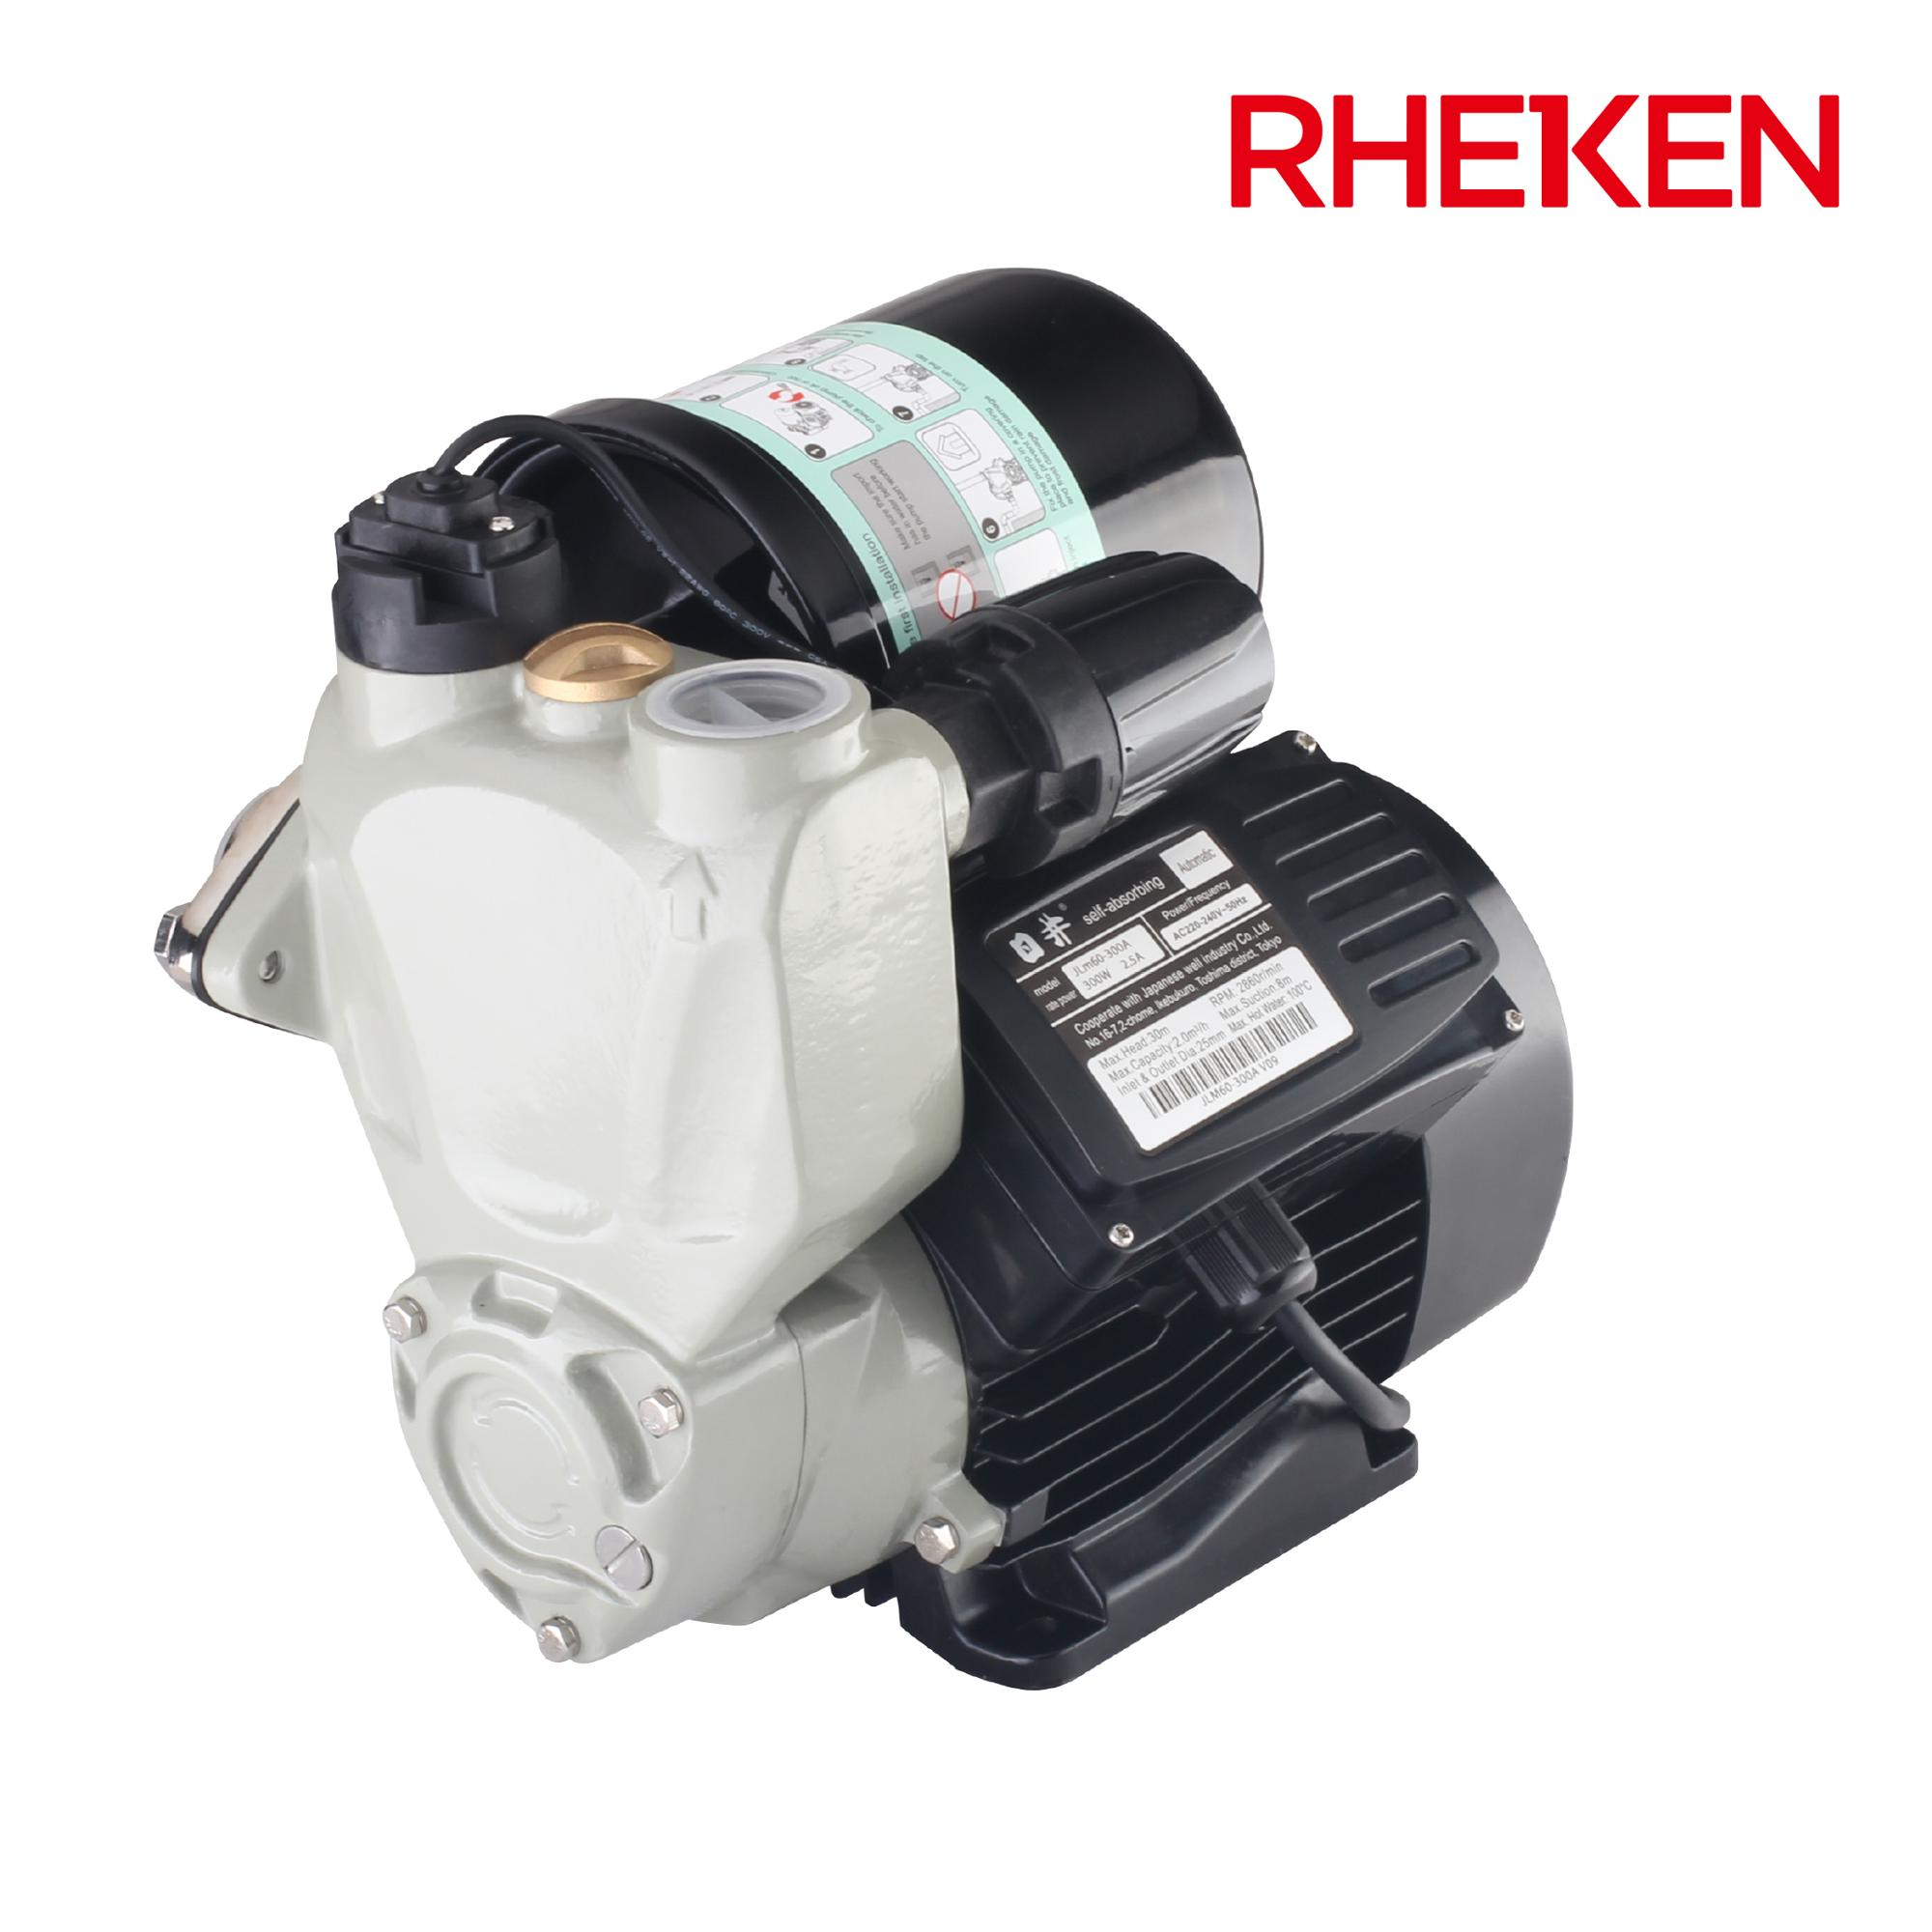 Electronic Water Machine Garden Use Energy-saving High Powerful Booster Low Noise Stainless Steel Impeller Self-priming Jet Pump